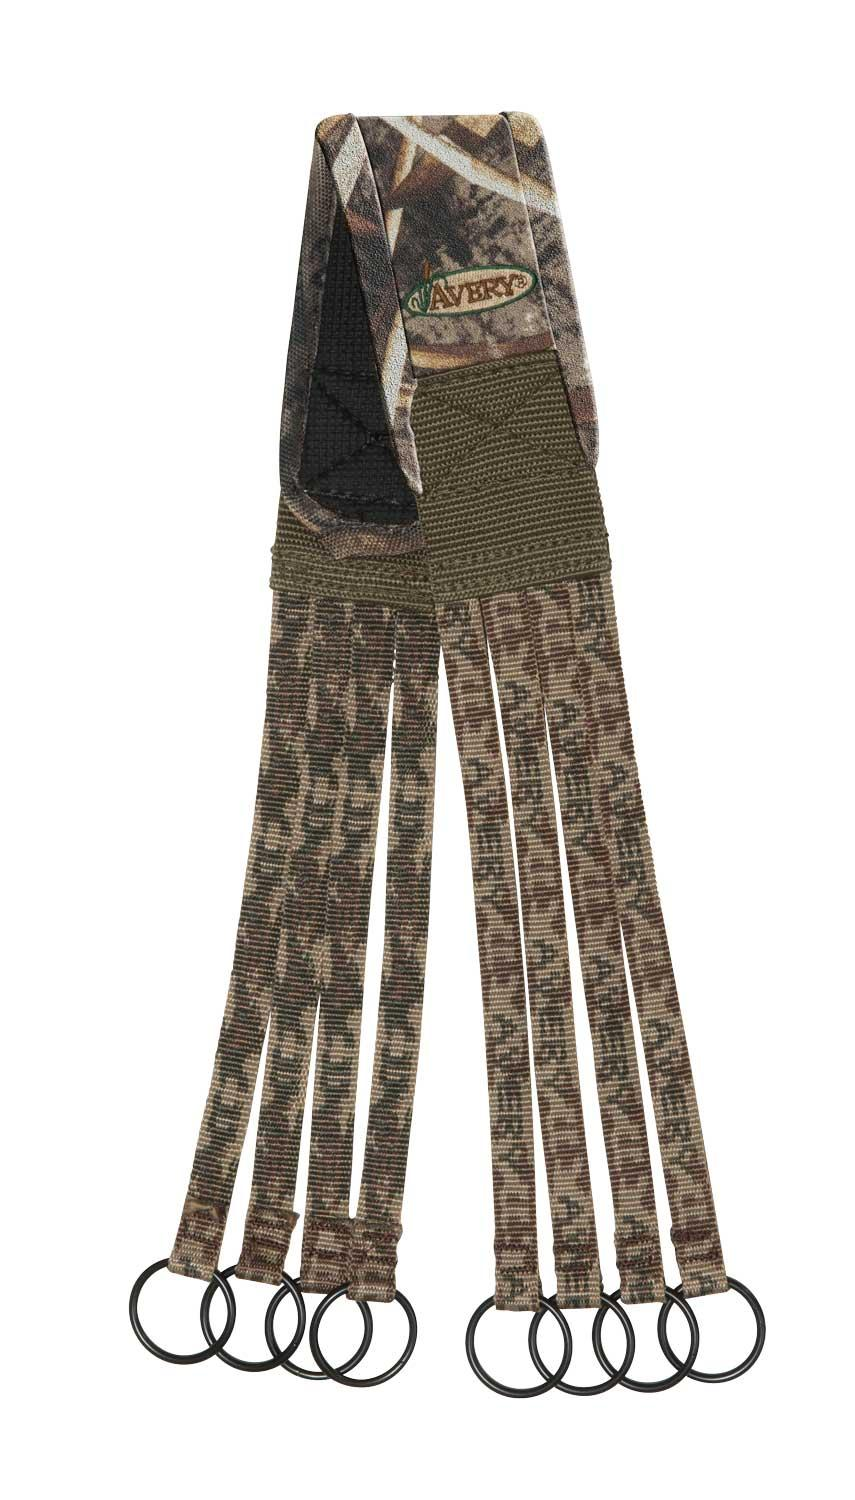 Avery Game Hog Bird Strap in Realtree Max 5